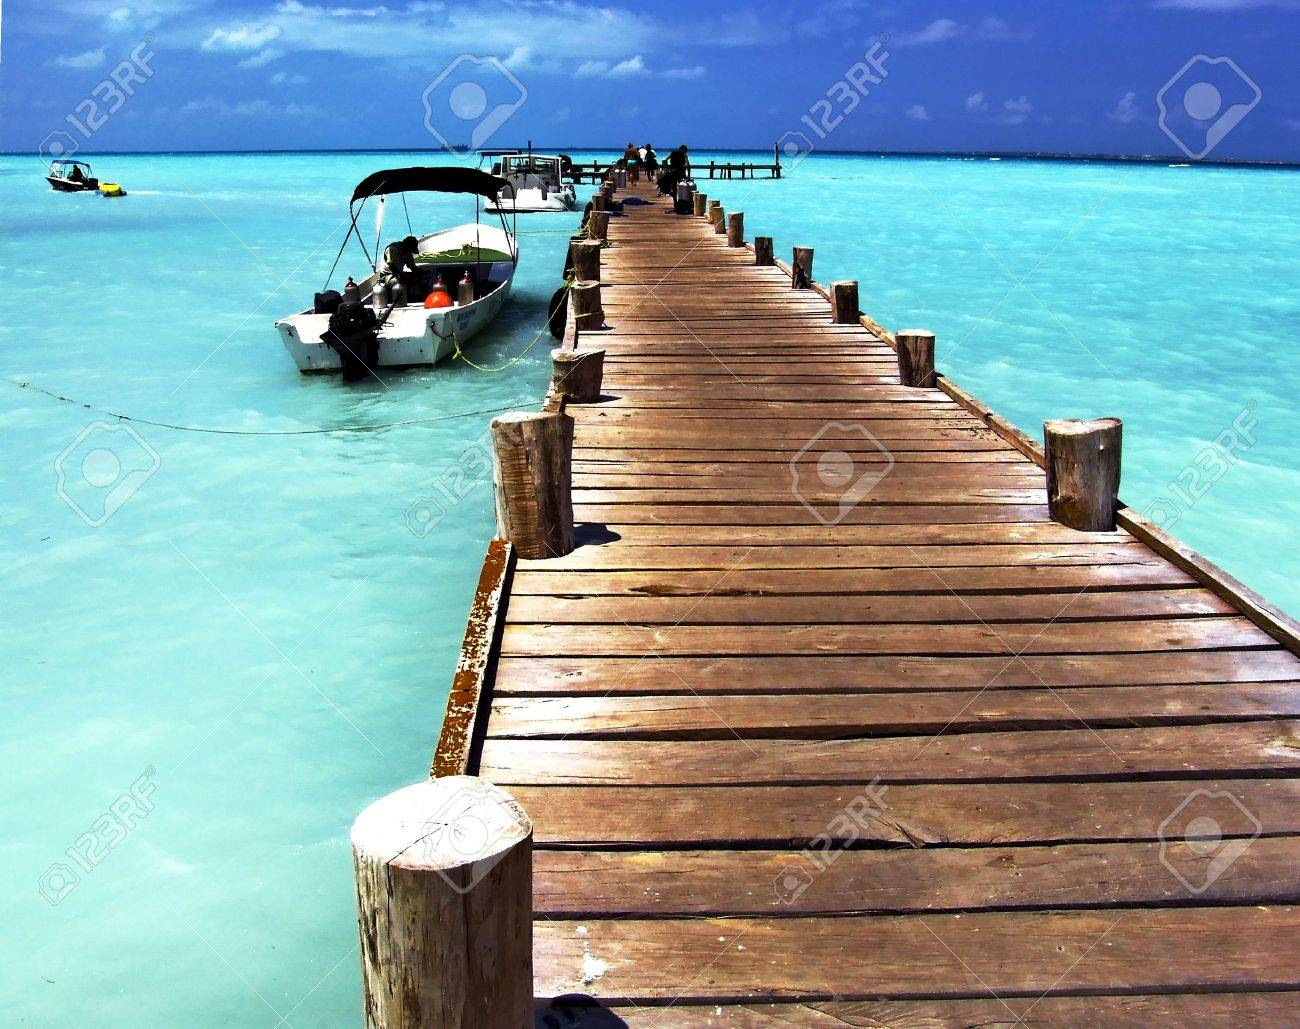 Planked foot way to ocean, Caribbean Sea, Cancun, Mexico - 2735741